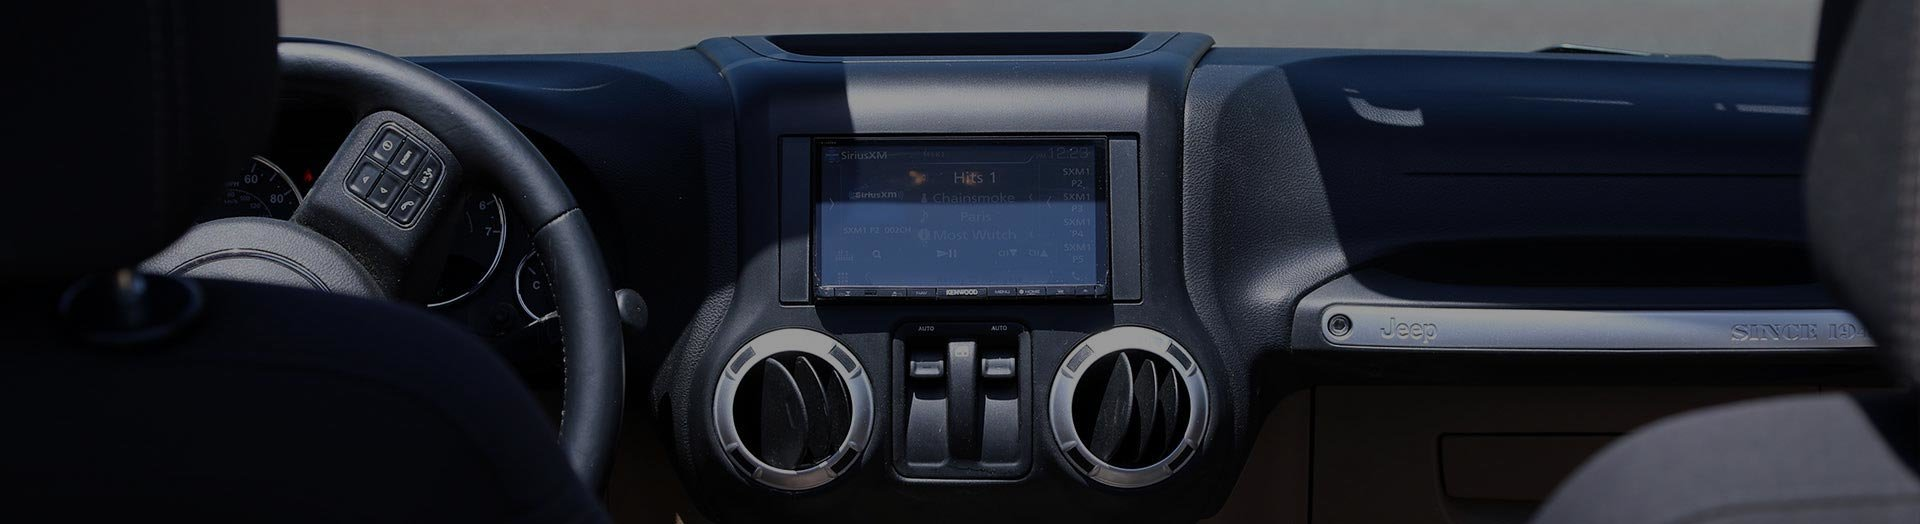 Car Stereo Design & Installation